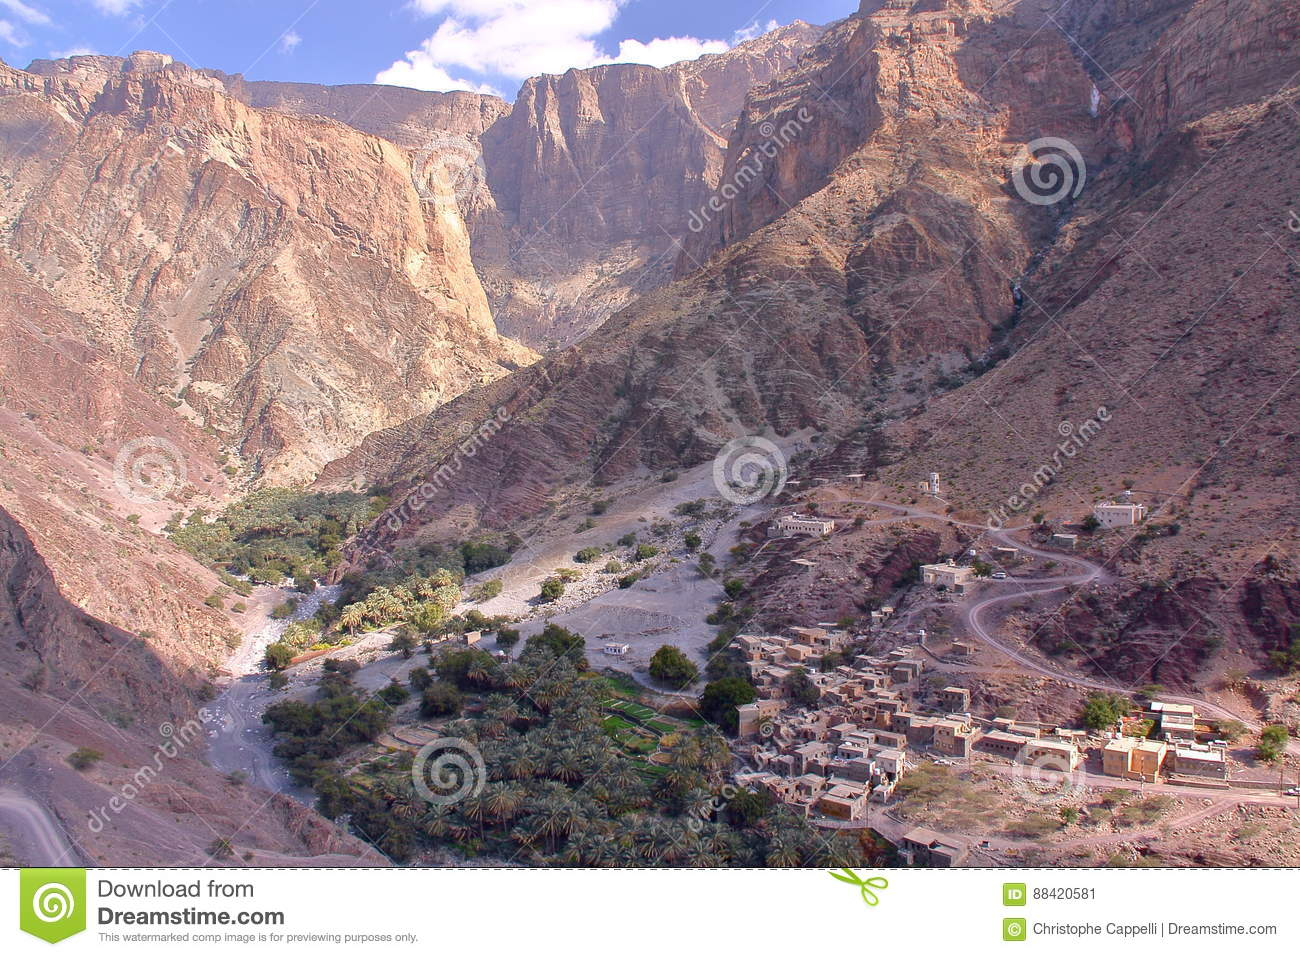 OMAN: General view of the mountains and a village in Jebel Akhdar Western Hajar